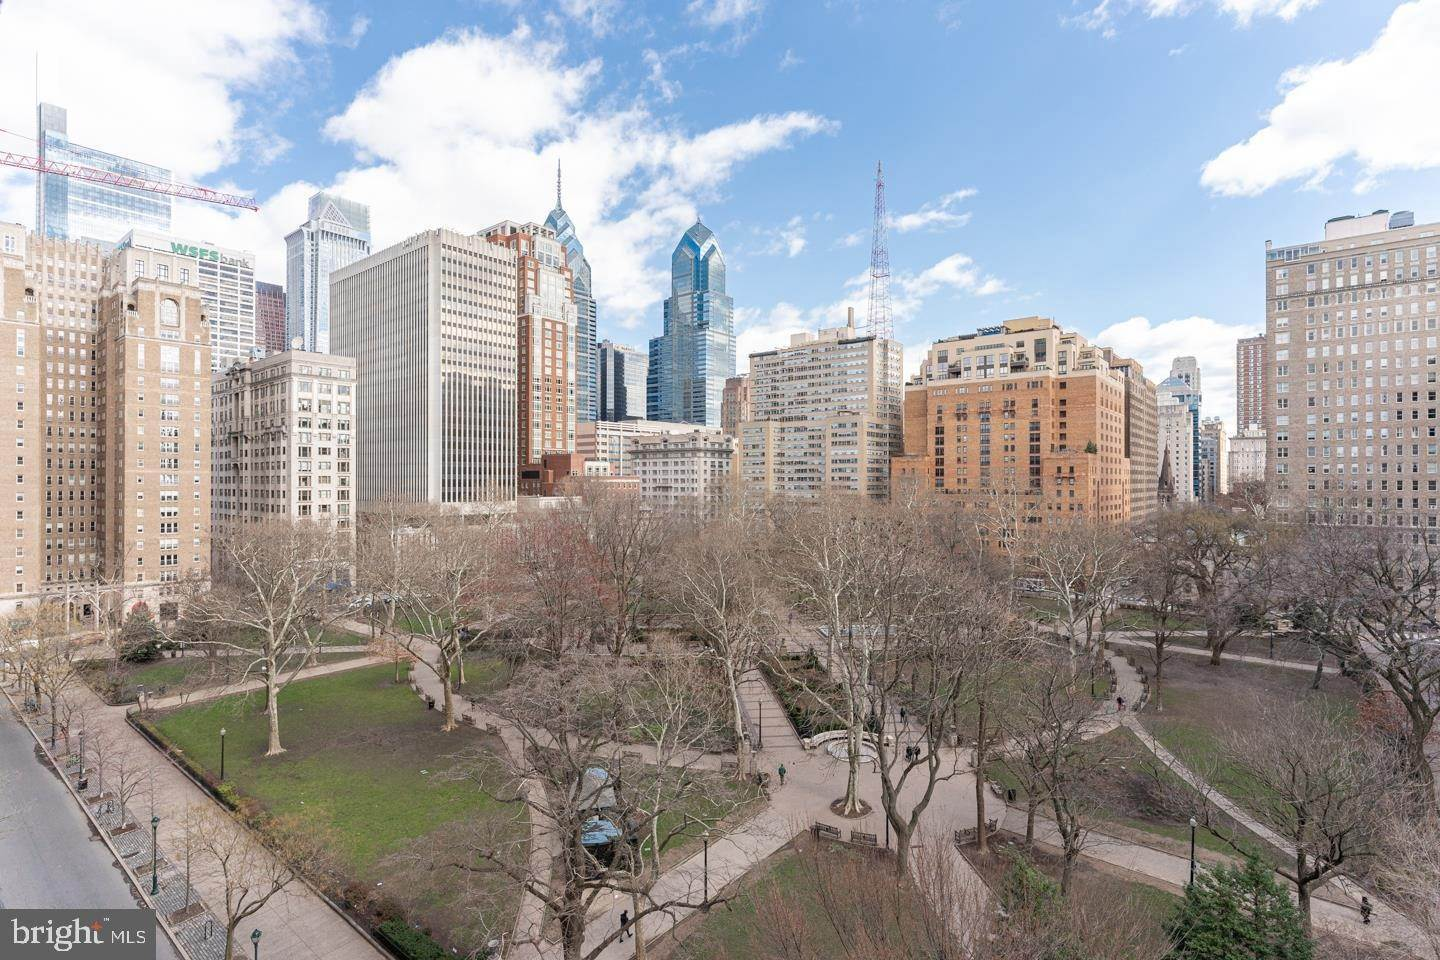 Property for Sale at 224-30 W RITTENHOUSE SQ #1005 Philadelphia, Pennsylvania 19103 United States